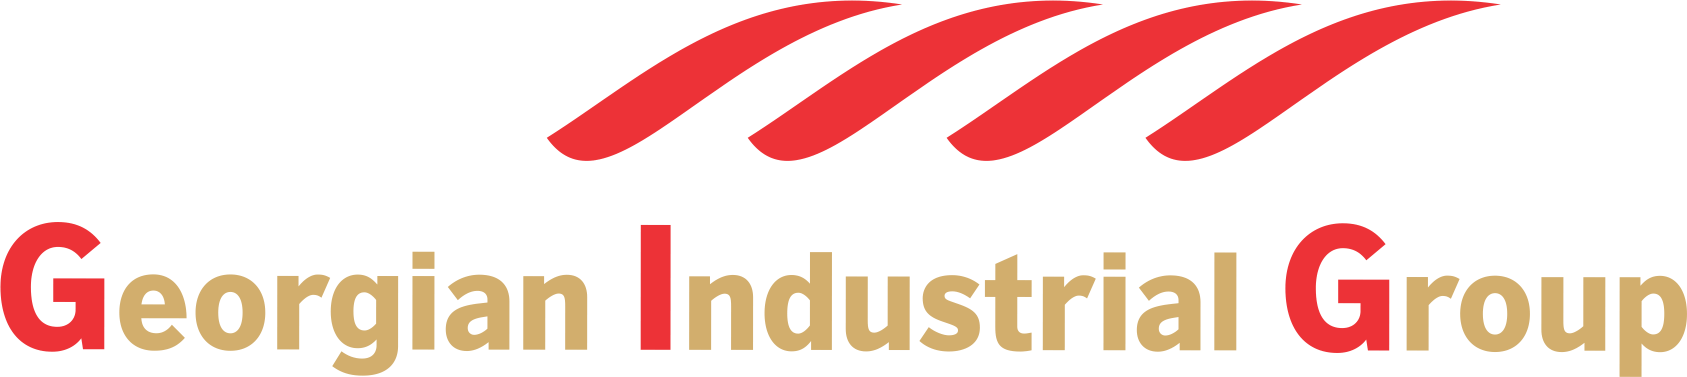 Georgian industrial Group